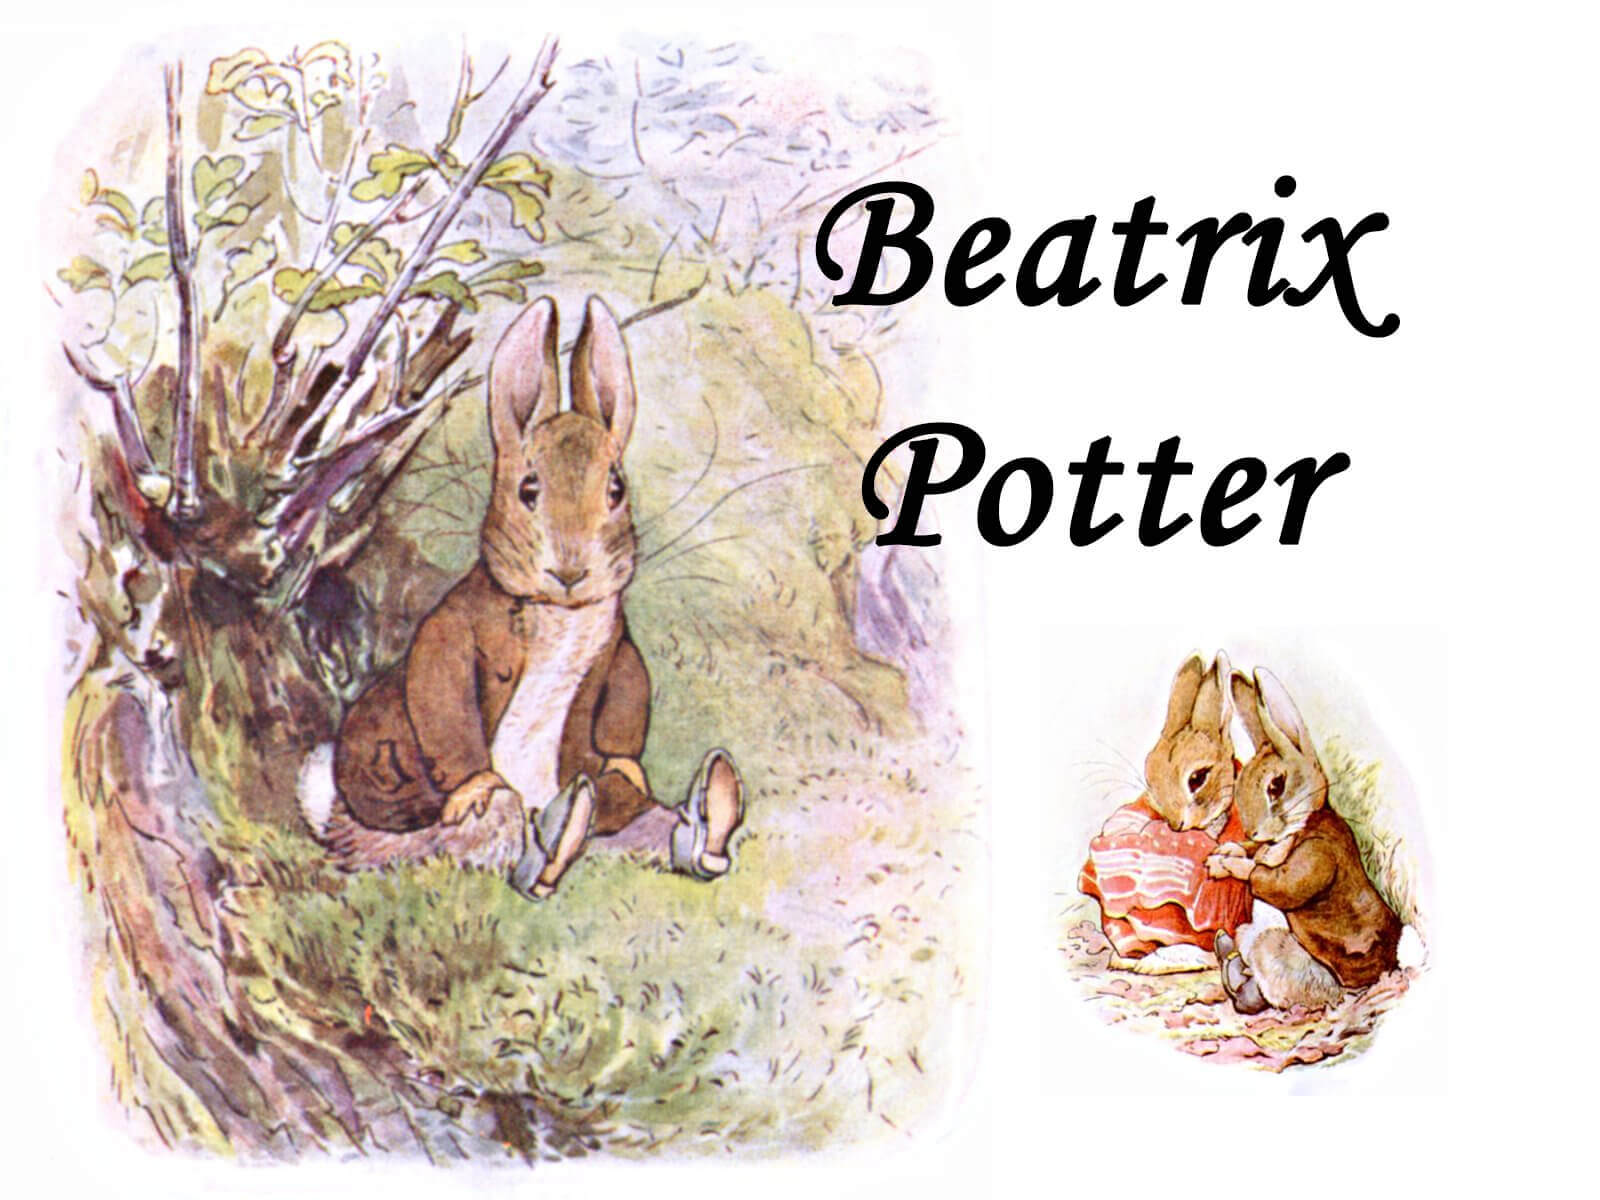 Beatrix Potter 187 Resources 187 Surfnetkids